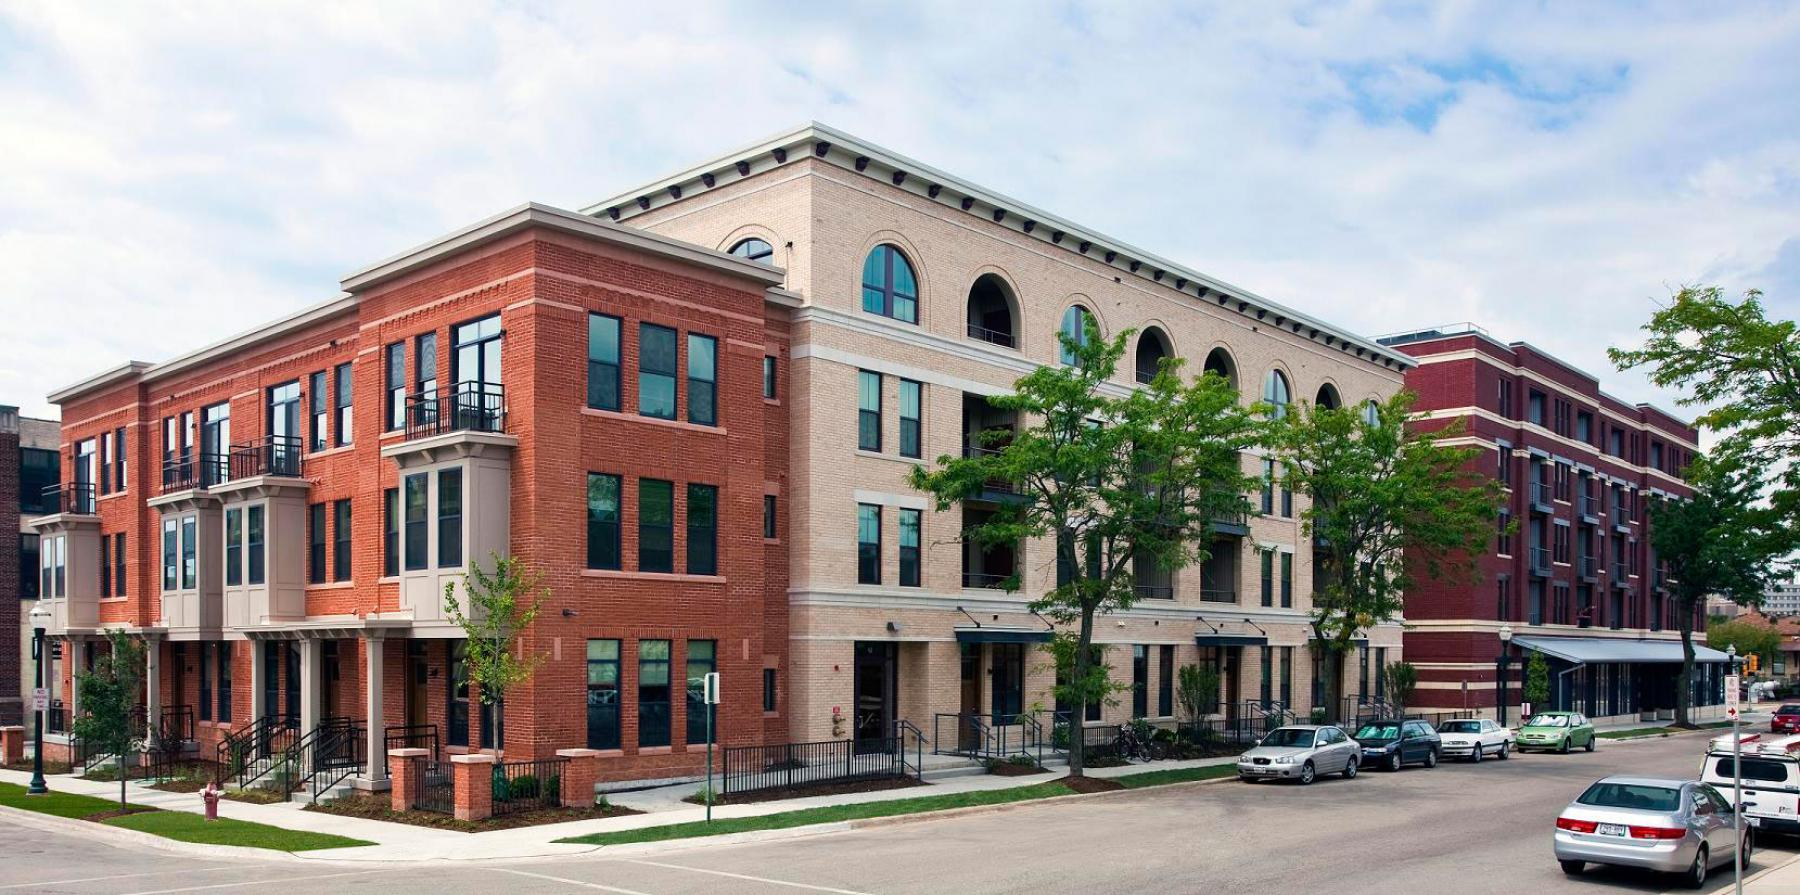 ULI The Depot Apartment and Townhomes